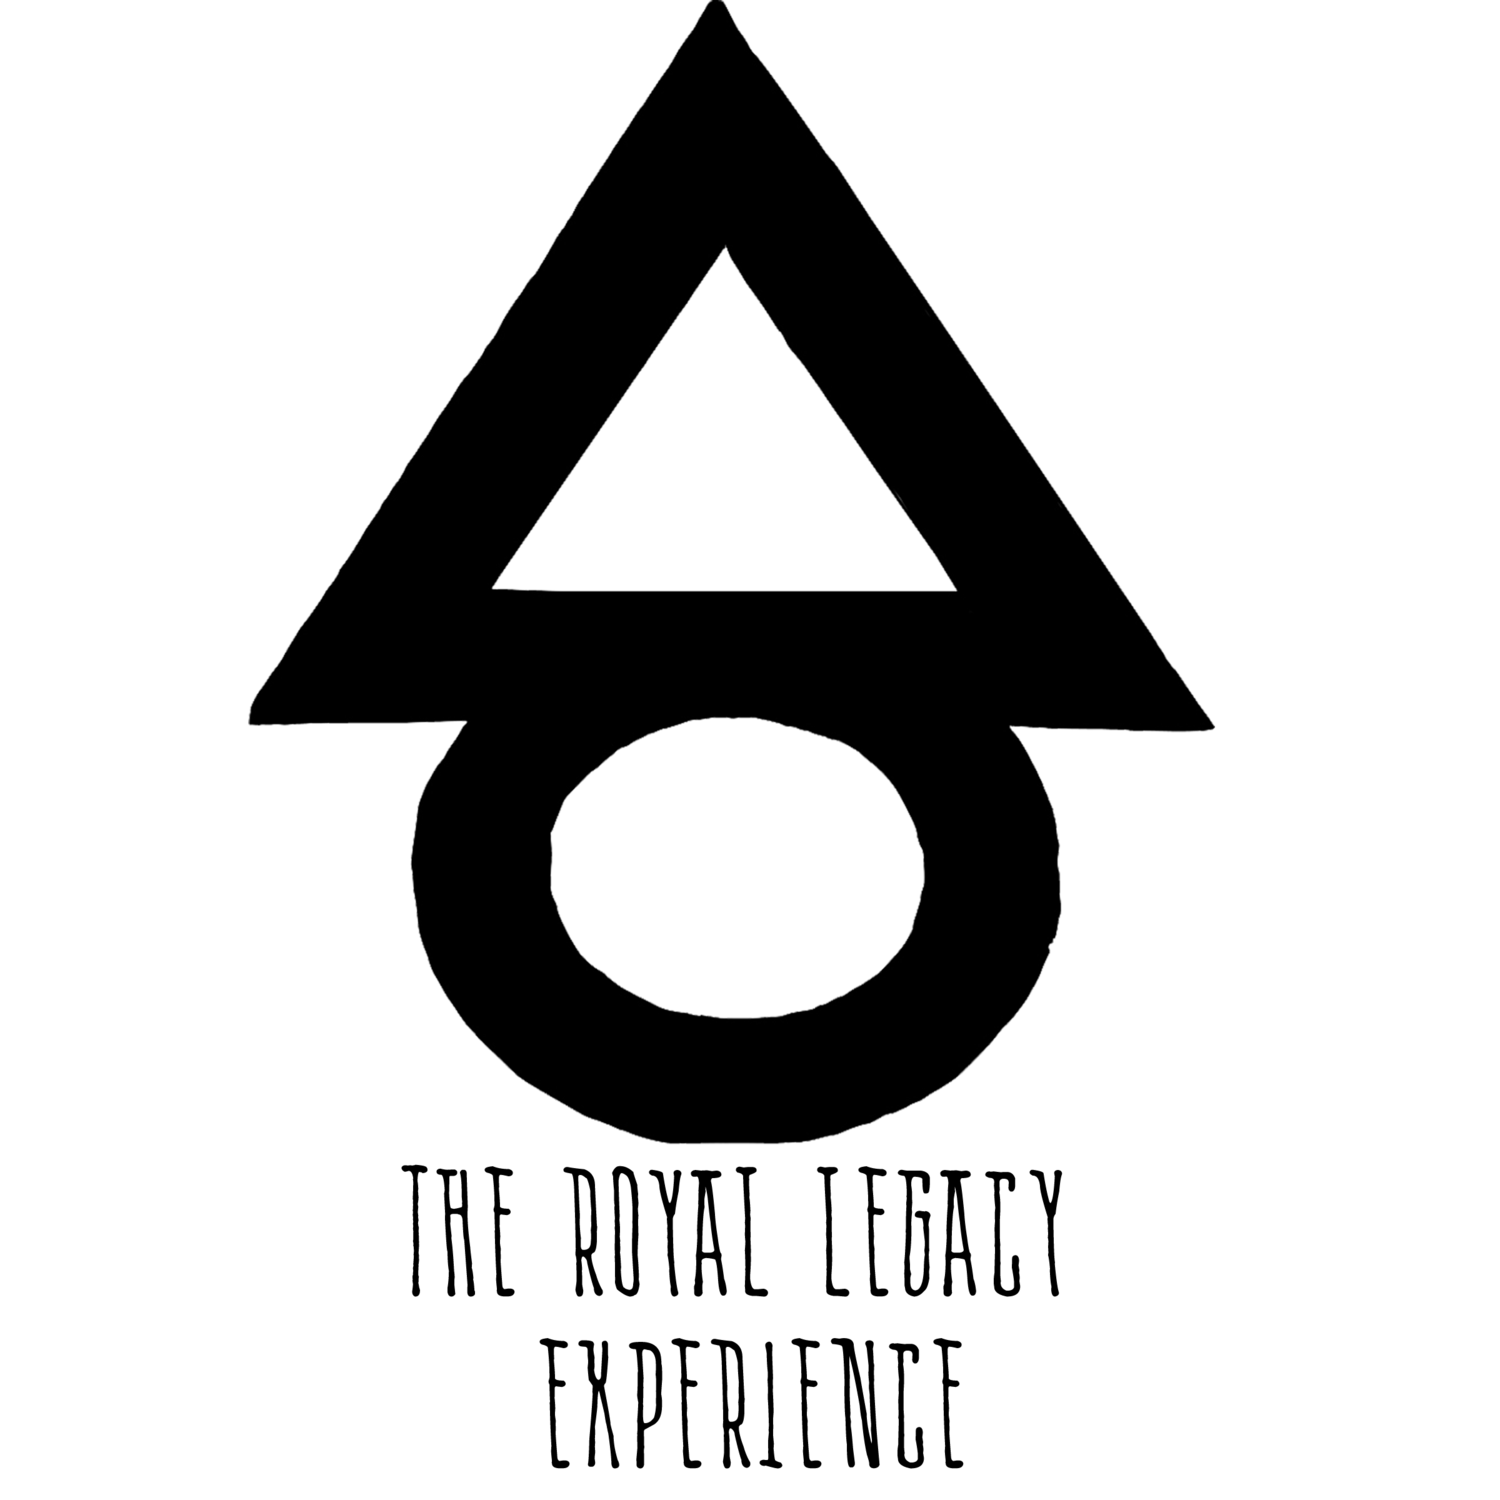 The Royal Legacy Exp